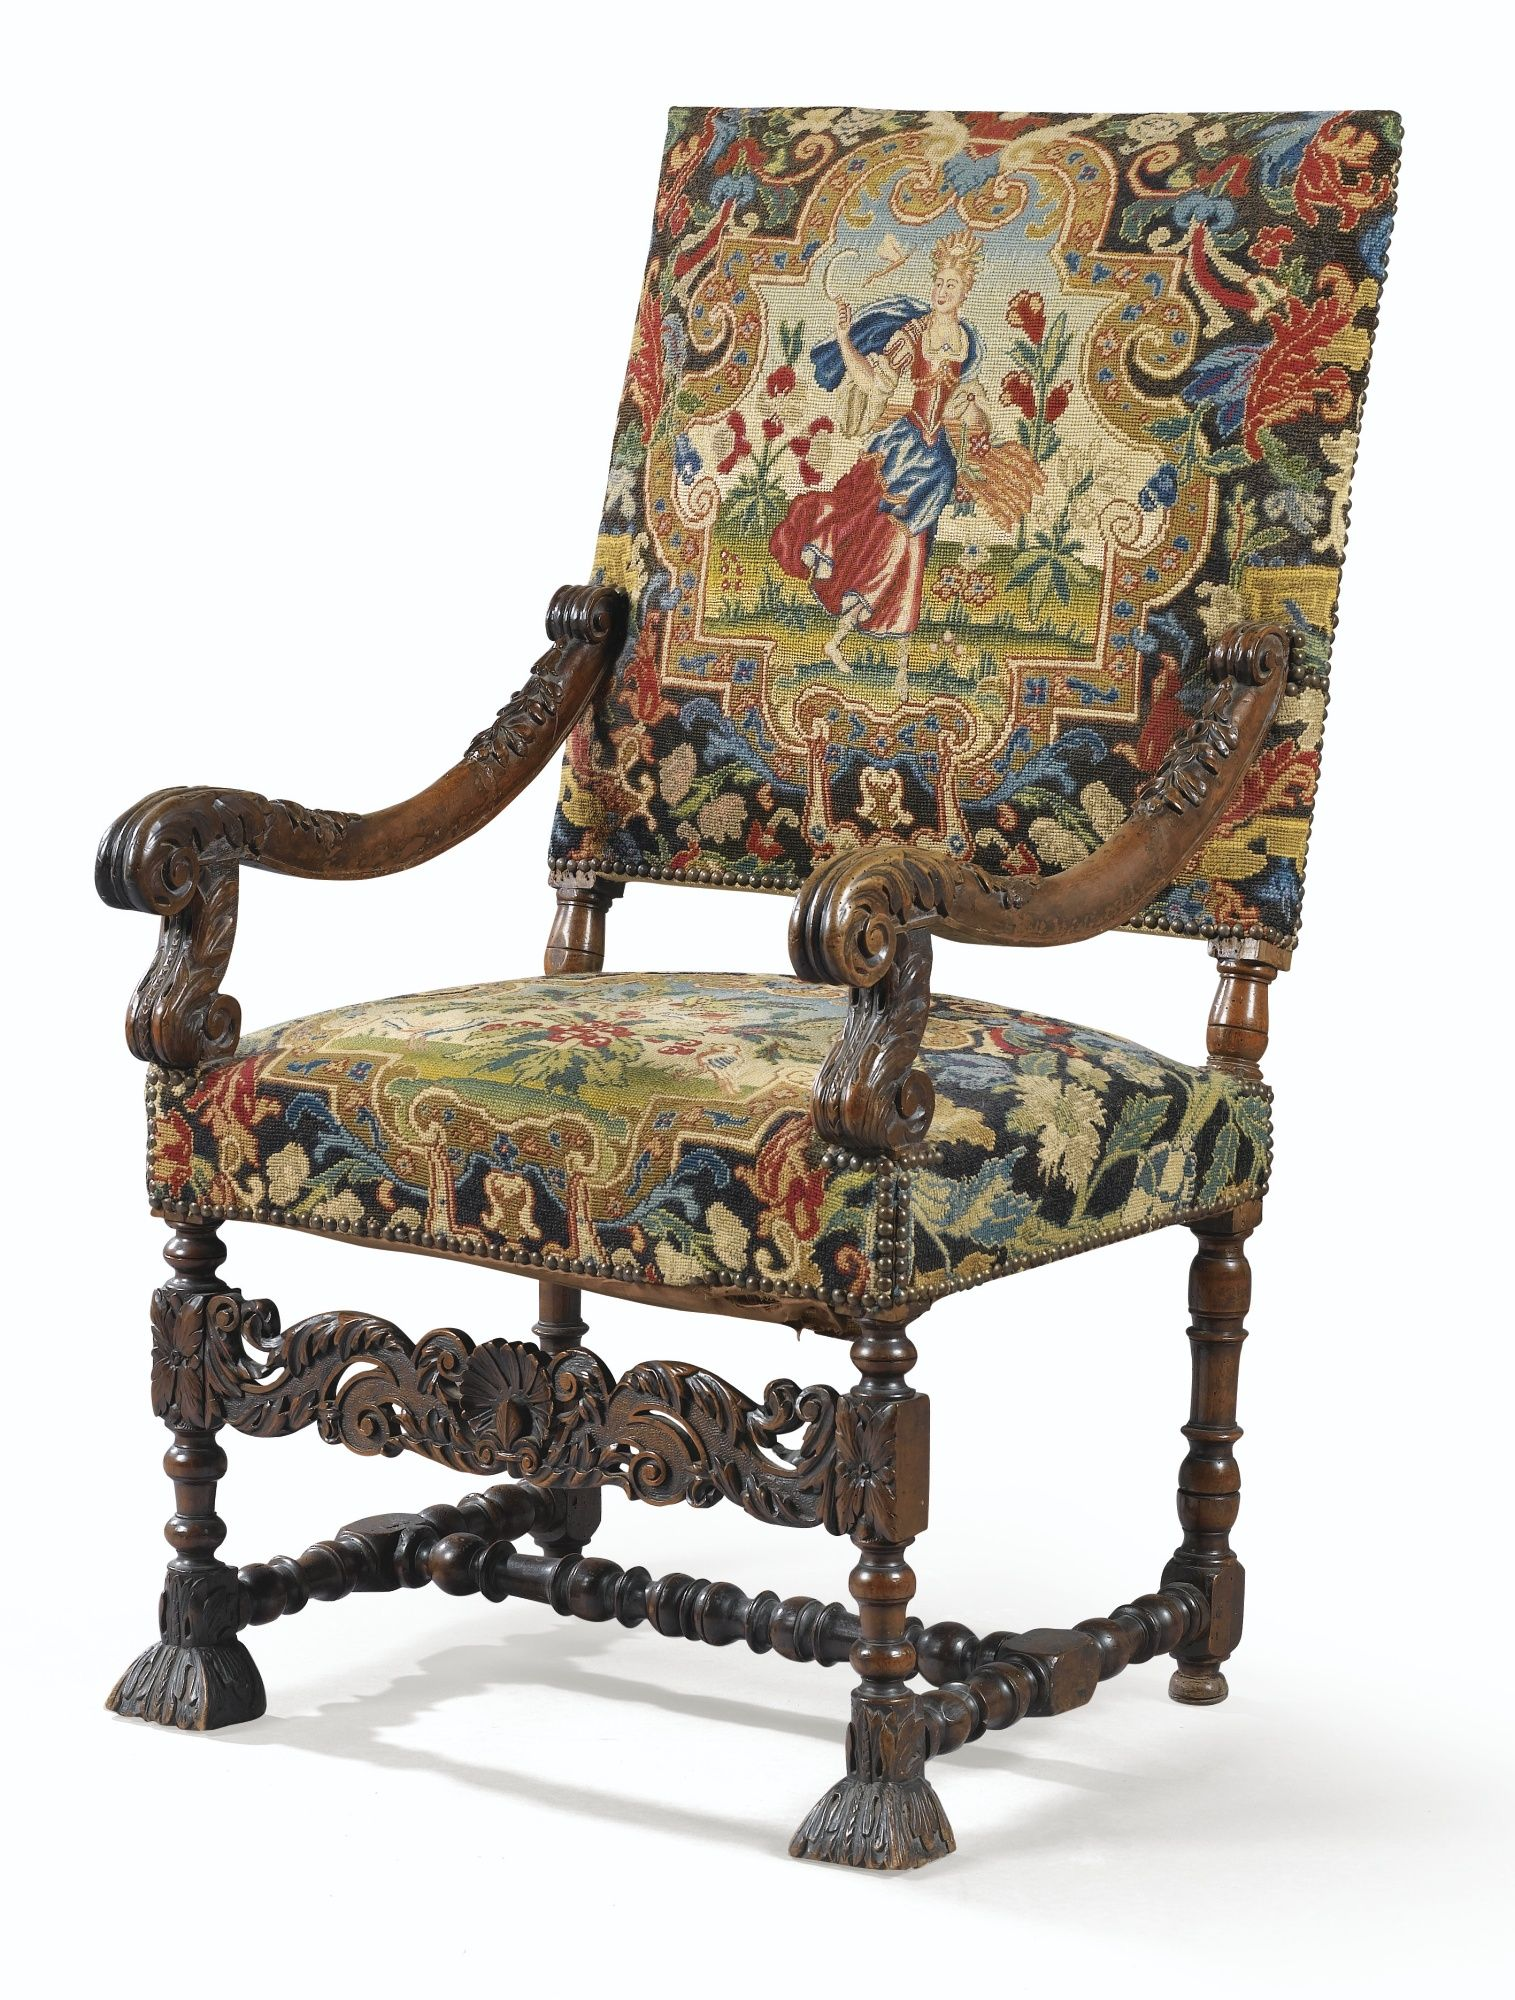 fauteuil dossier plat en noyer sculpt d 39 poque louis xiv vers 1680 lot sotheby 39 s when. Black Bedroom Furniture Sets. Home Design Ideas